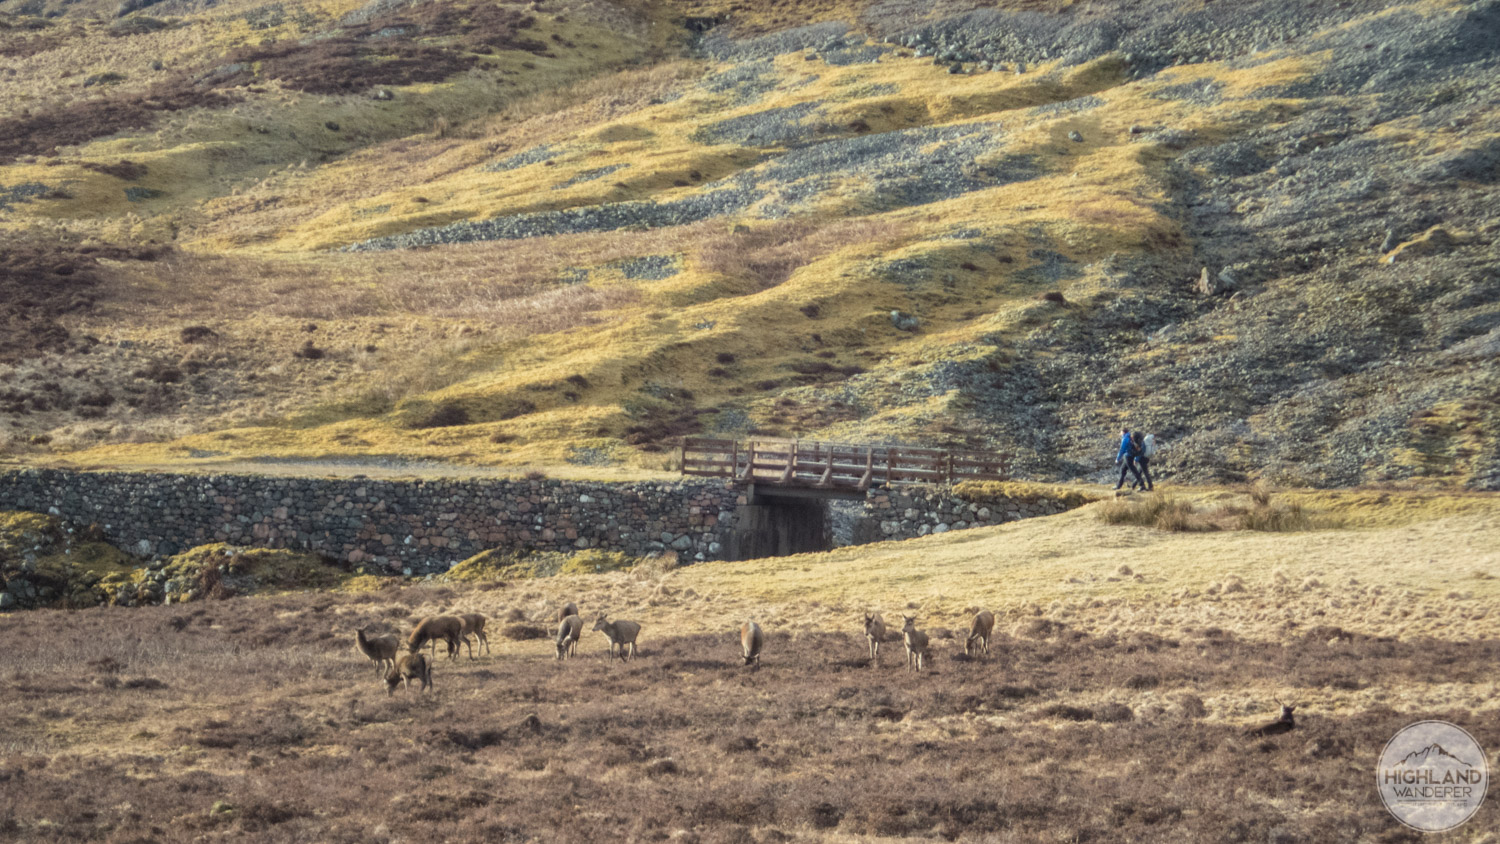 This herd of deer grazing in Glen Coe was a nice end to the day.